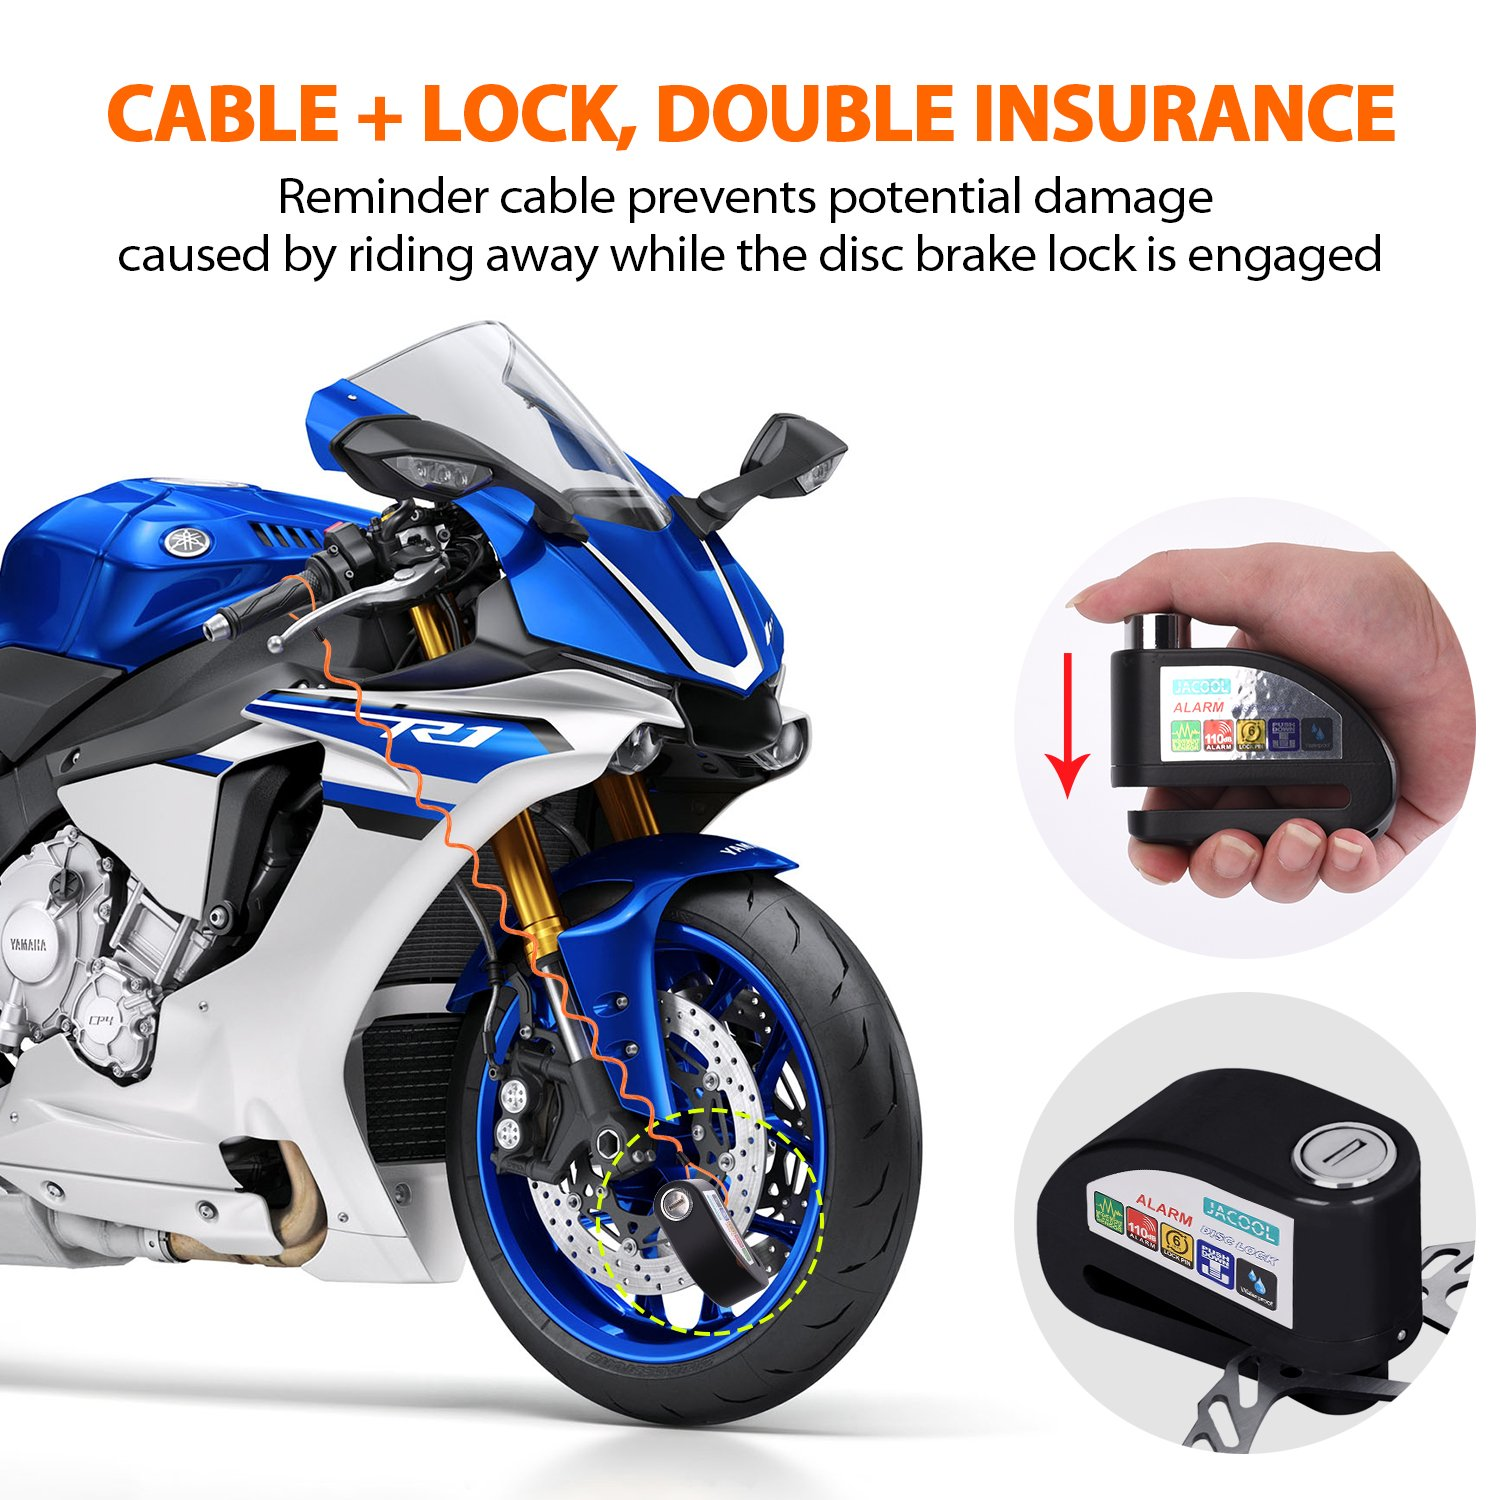 JACOOL Alarm Disc Lock Motorcycle Disc Brake Lock Anti-Theft Waterproof 110dB Alarm Sound and 6mm Pin with 4ft Reminder Cable for Motorcycles Bike Scooter Bonus Carry Pouch